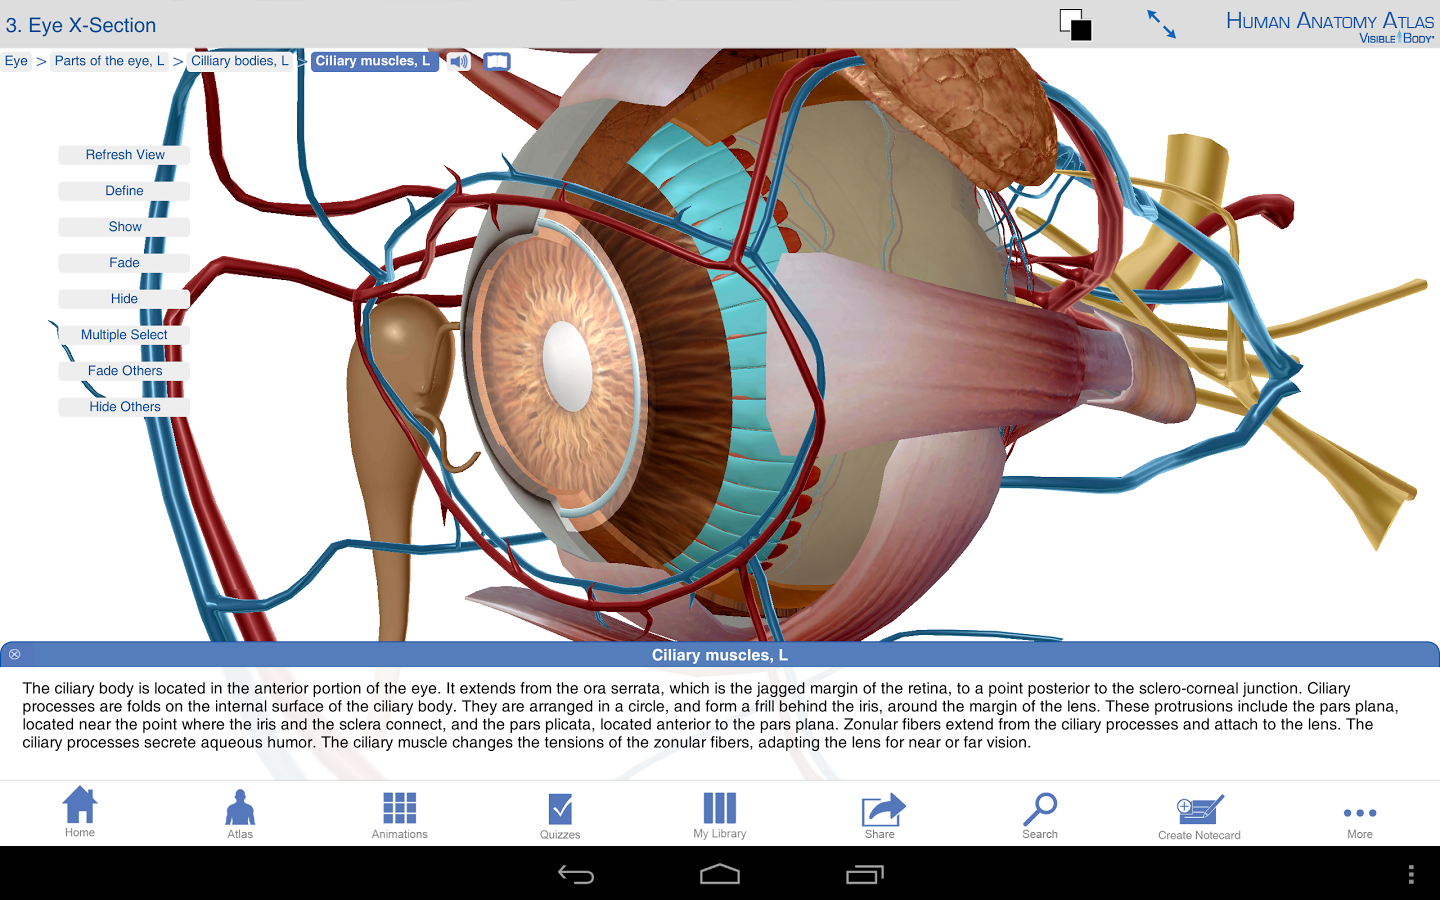 Download Free Top Android Apps: Human Anatomy Atlas v5.0.43 Apk